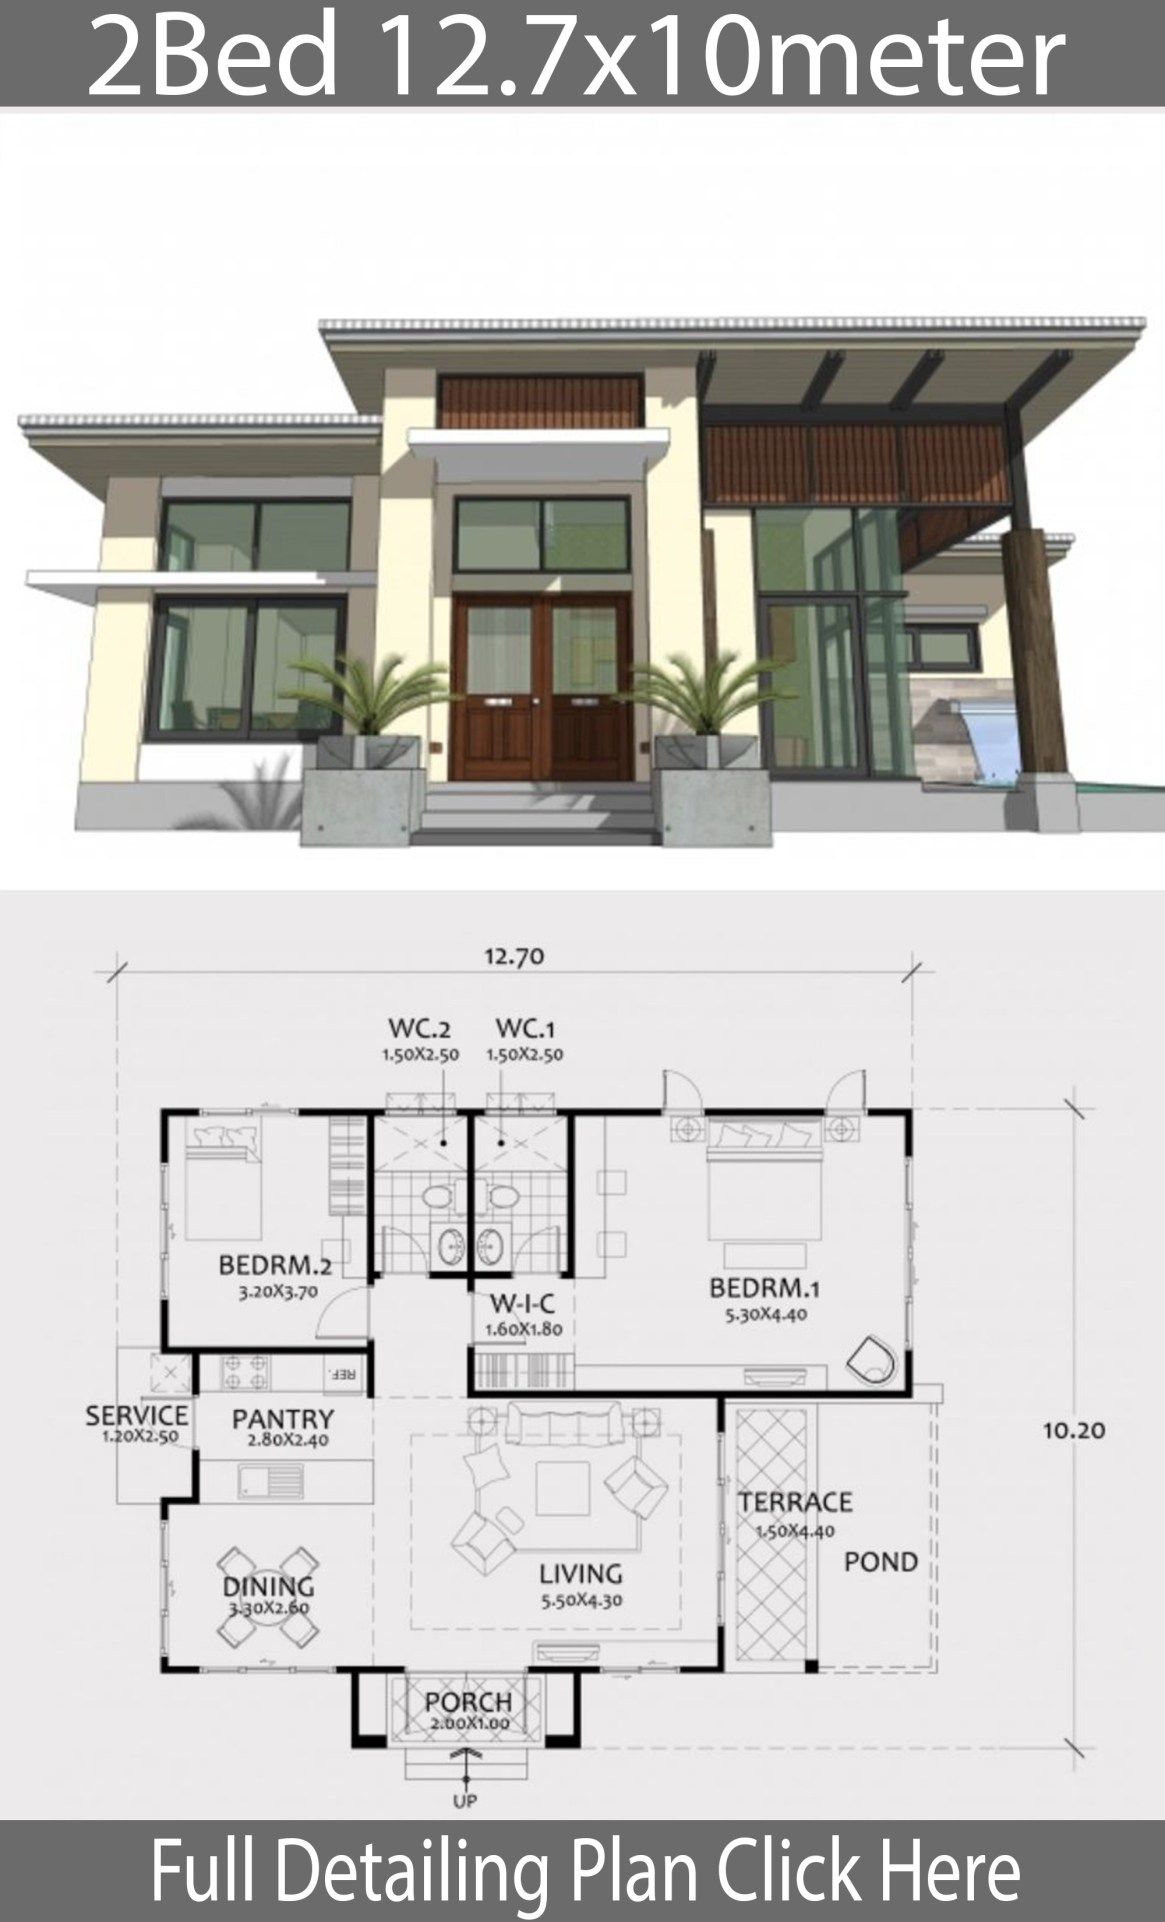 Home Design Plan 12 7x10m With 2 Bedrooms In 2020 Small House Design Bungalow House Design Home Design Plan